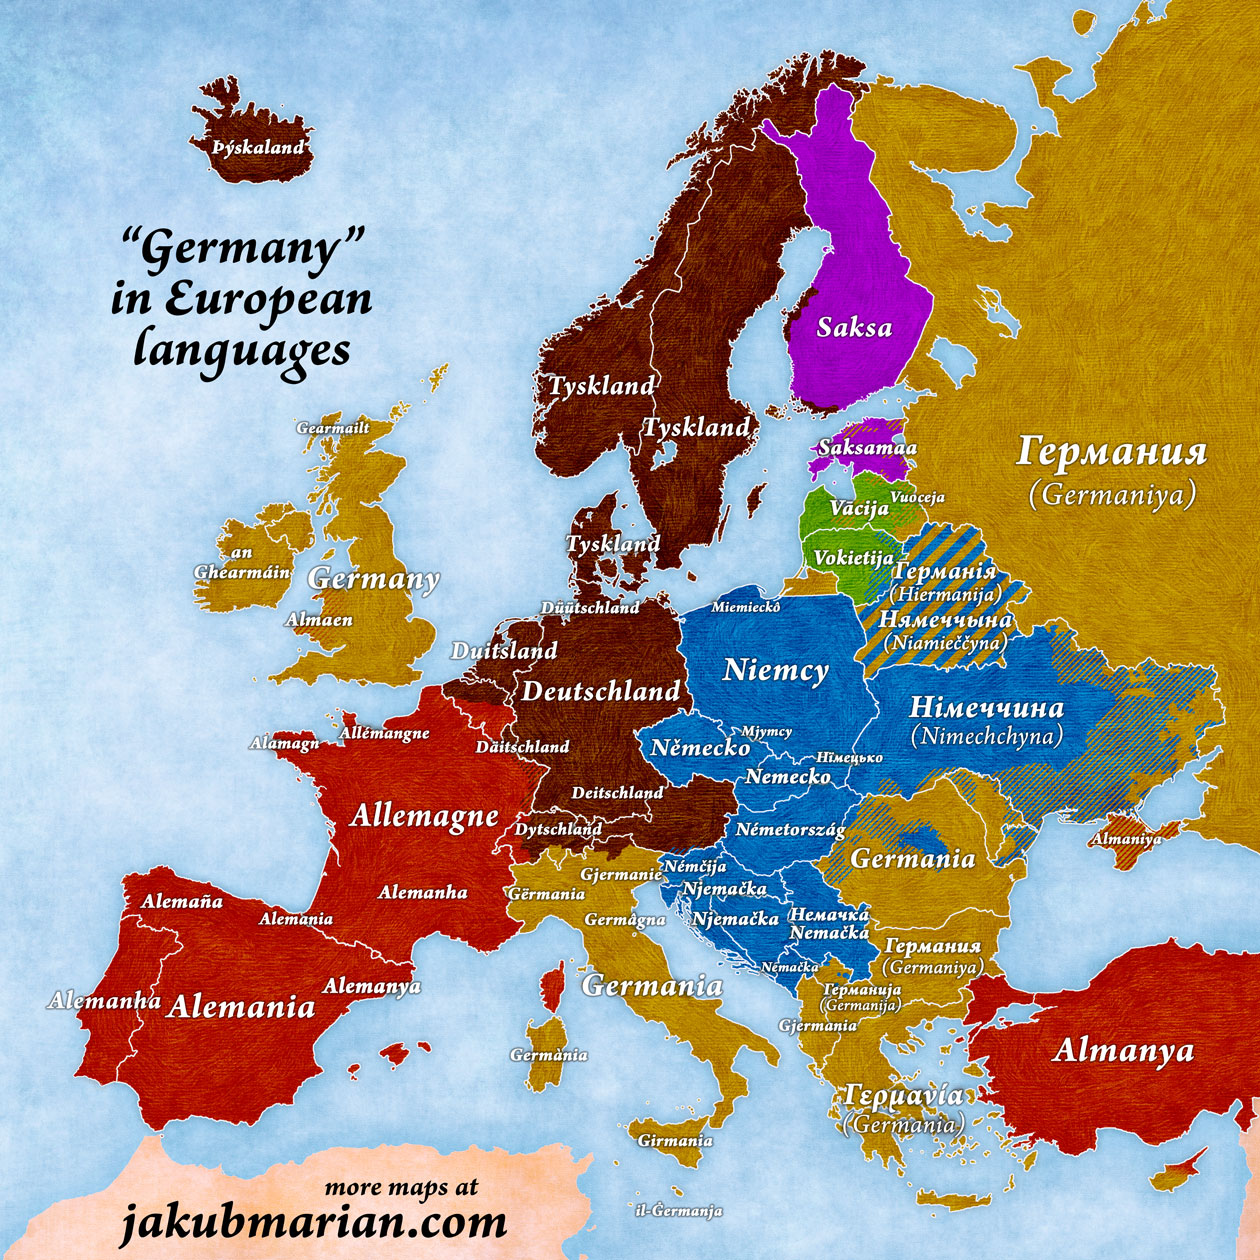 germany-european-languages